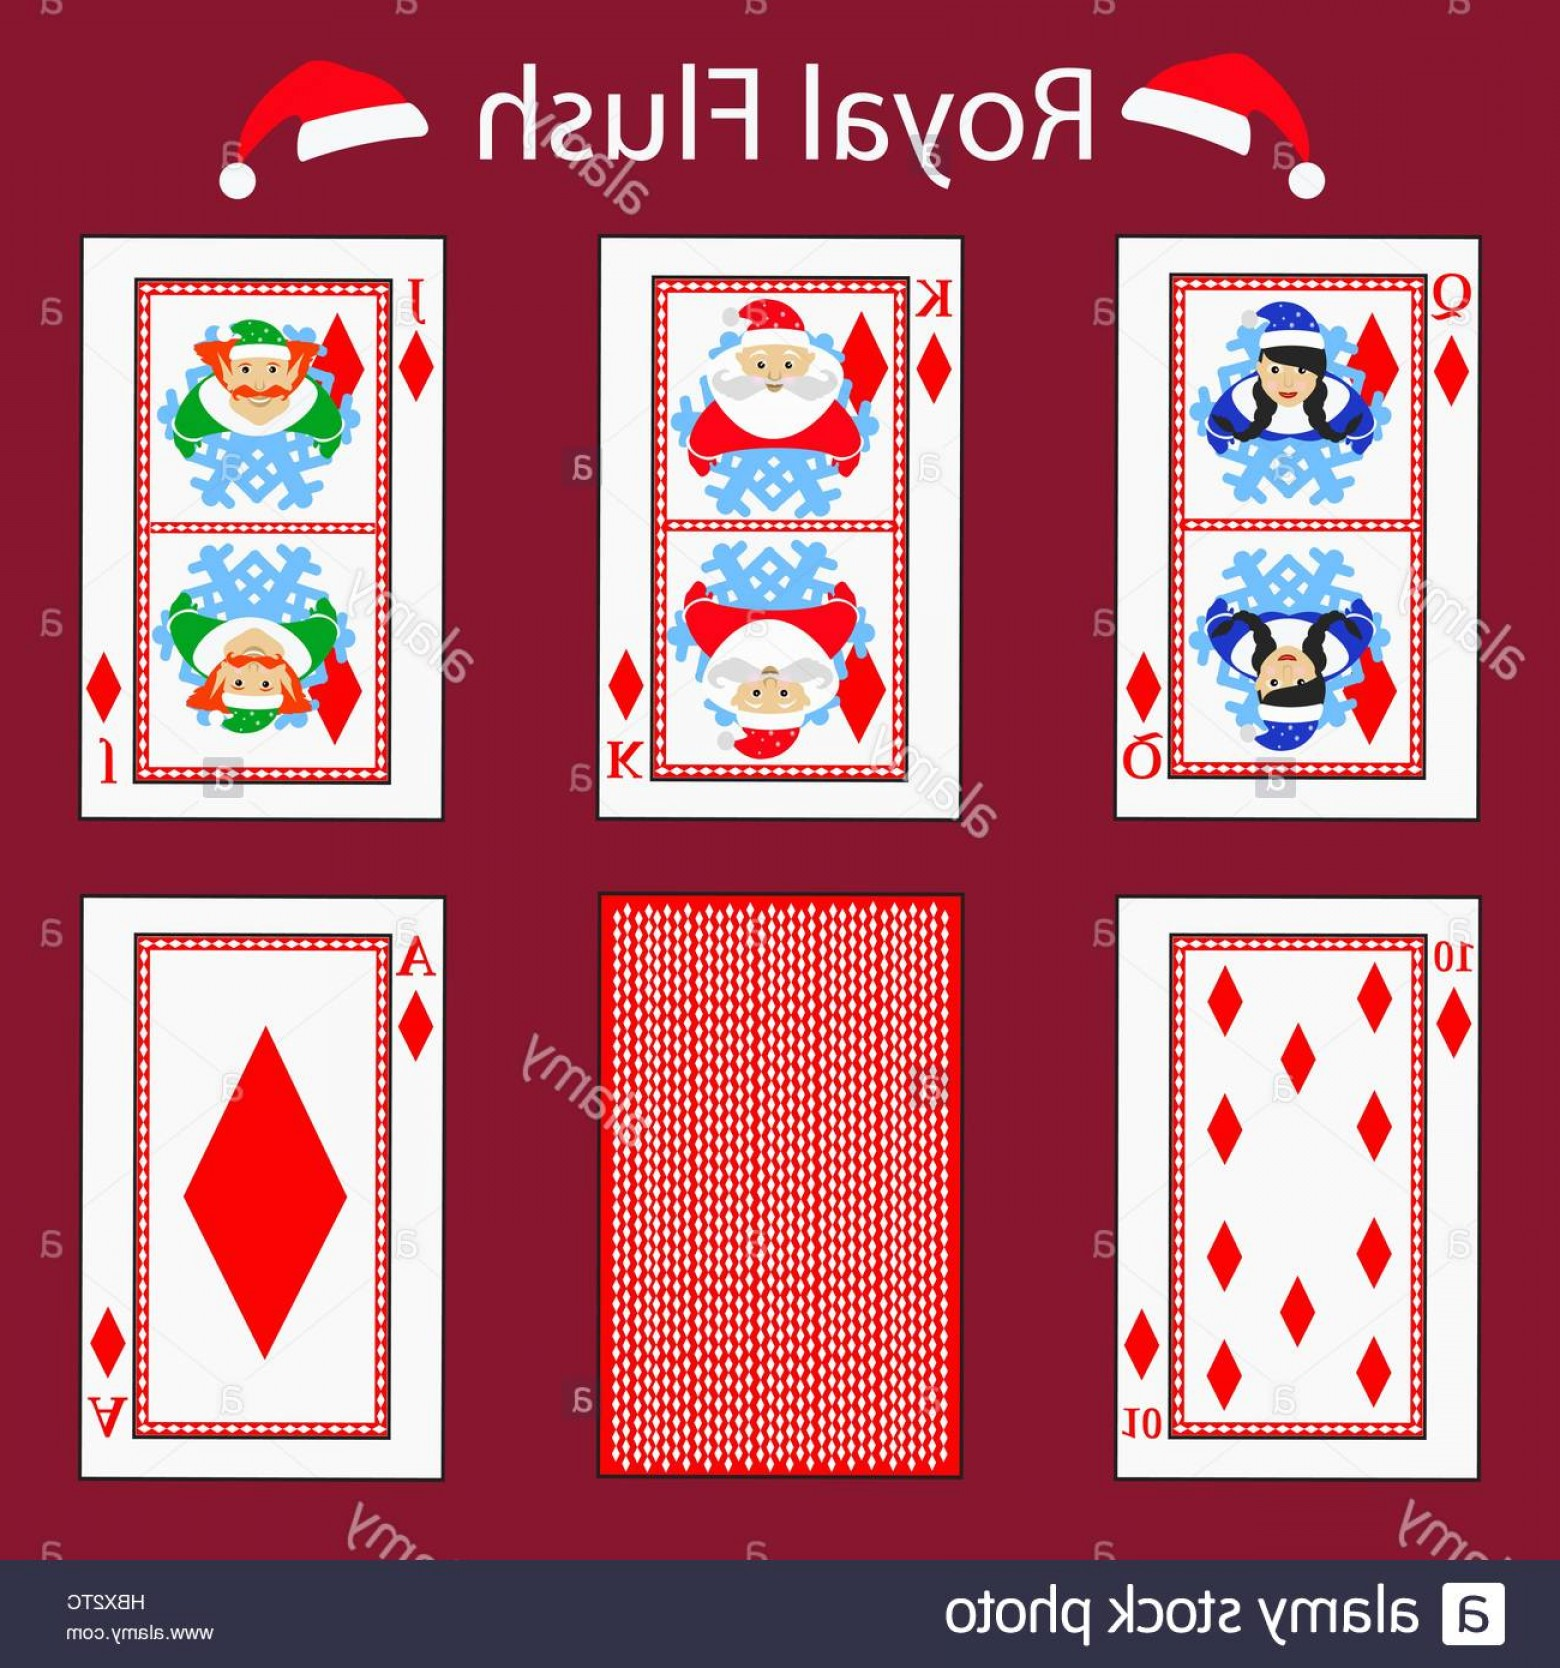 10 Playing Card Vector: Stock Photo Royal Flus Playing Card Poker Combination Vector Illustration Eps